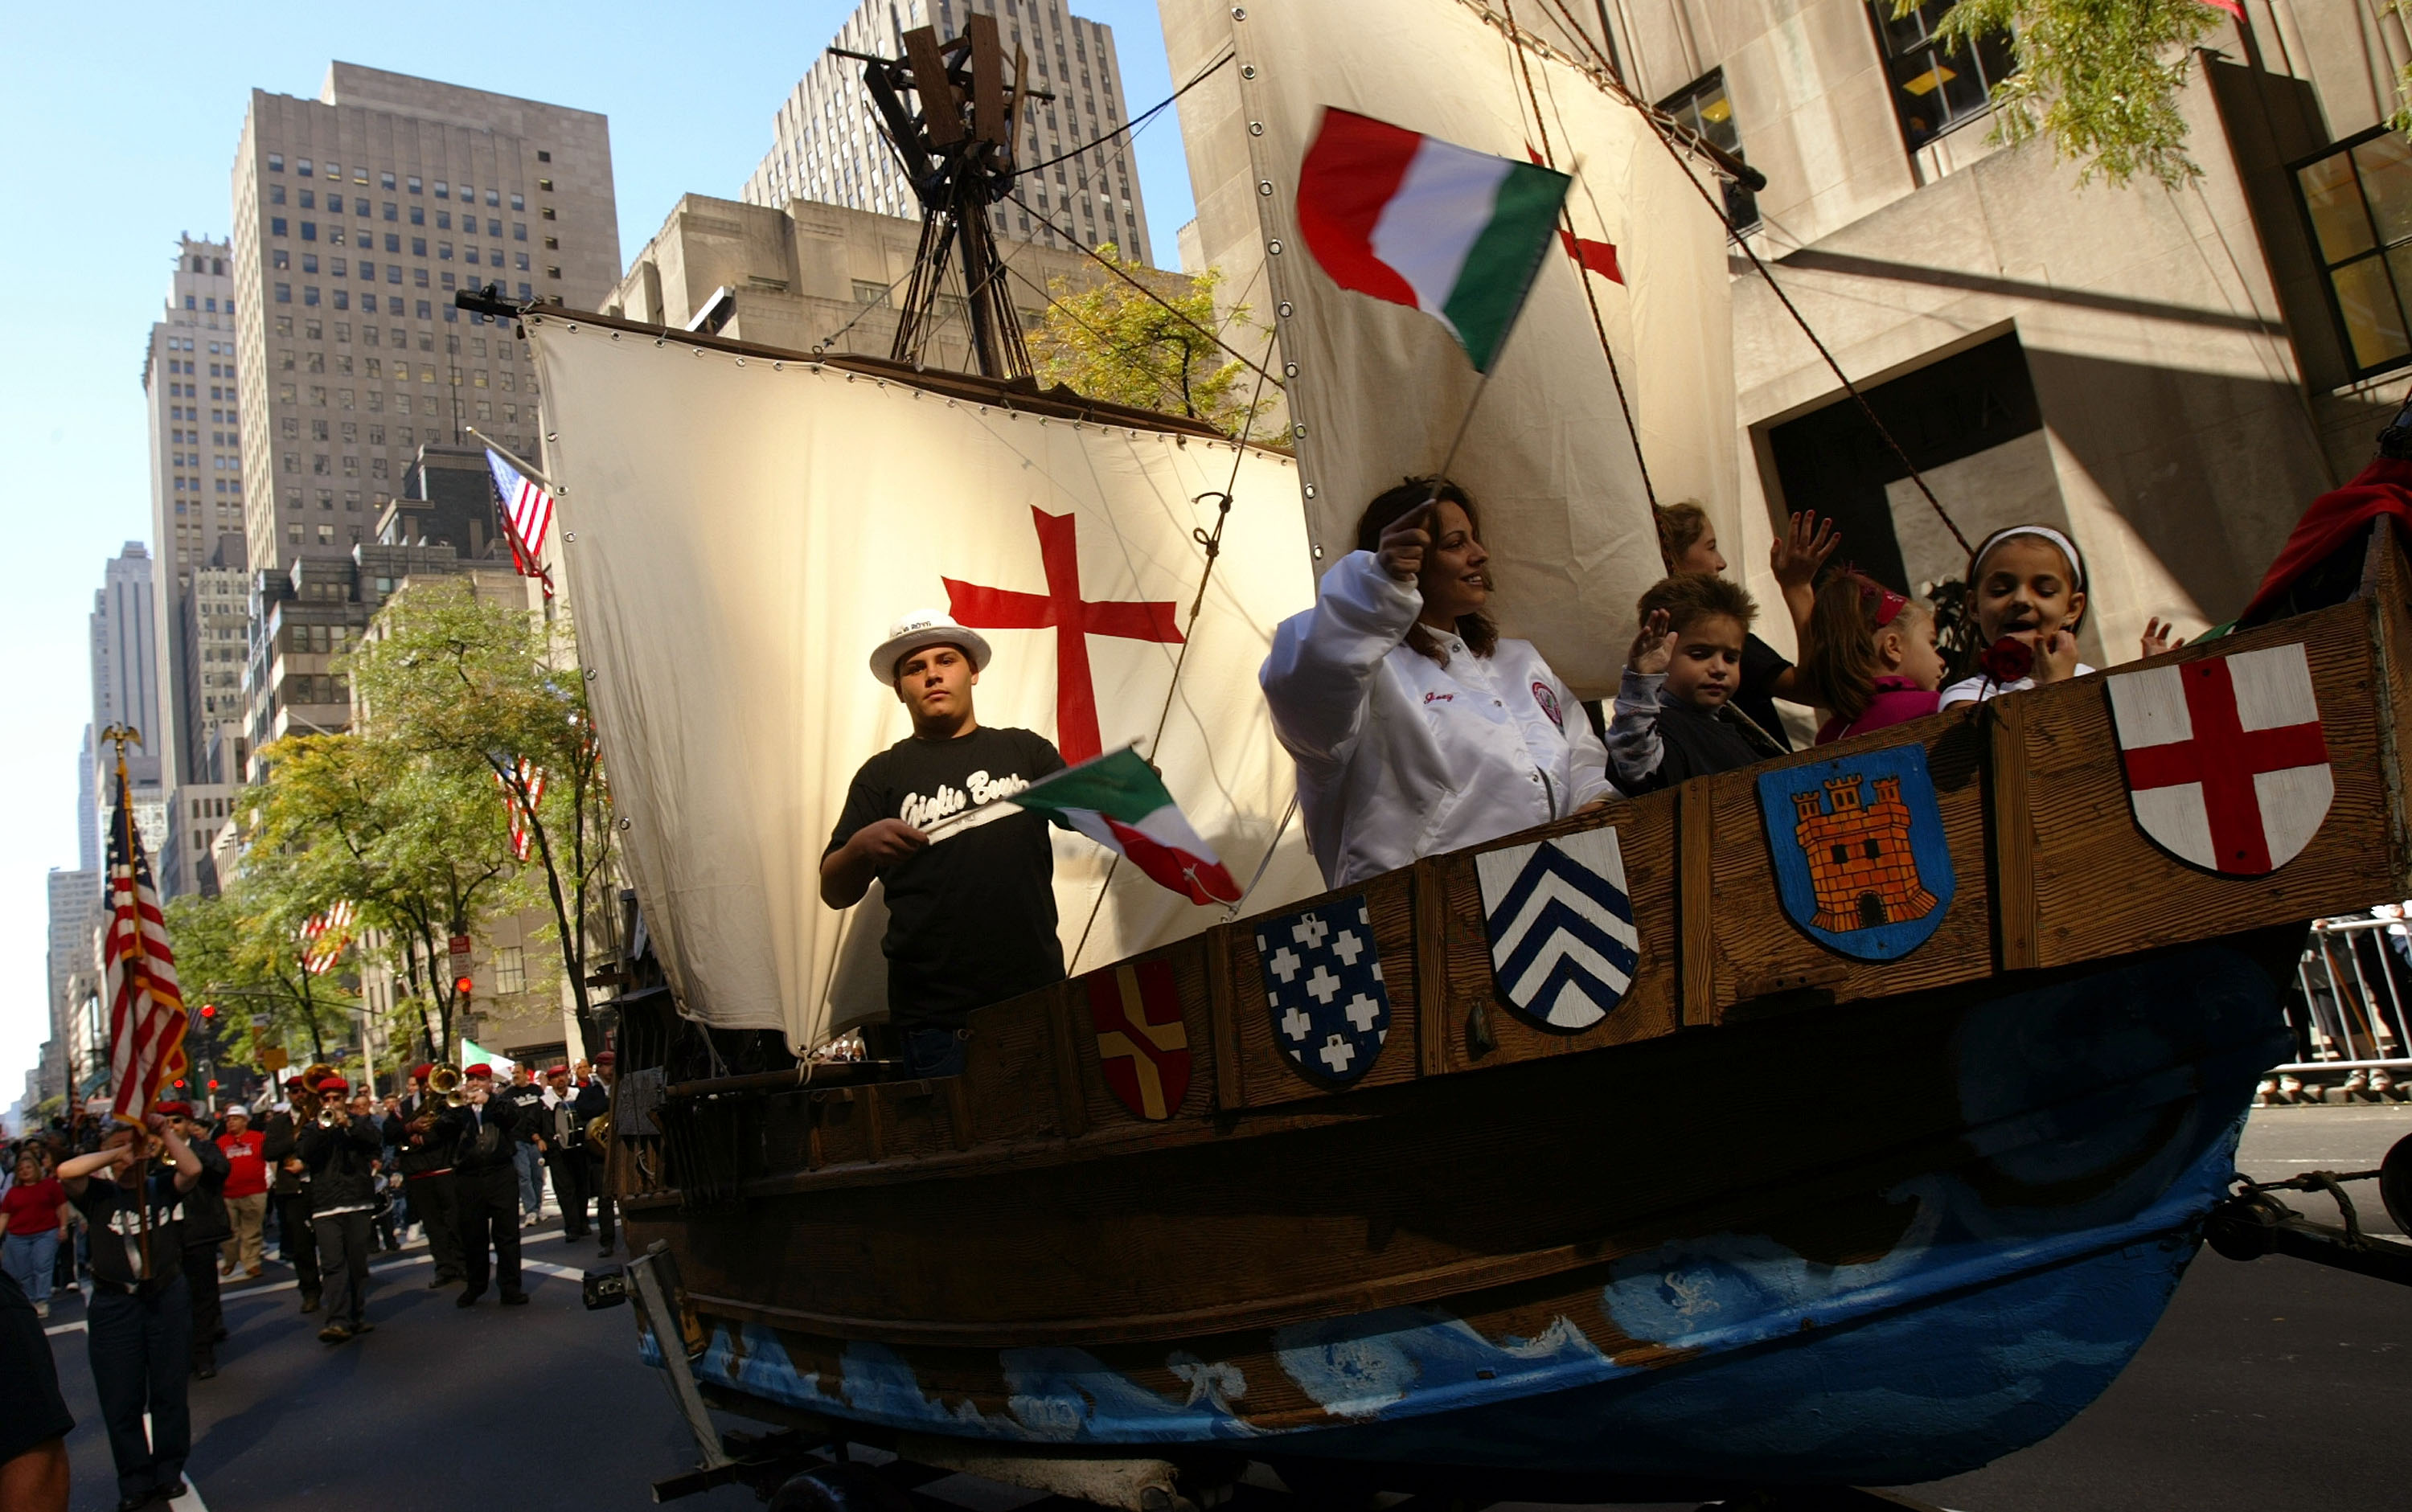 The Truth About Columbus Day: Why Are We Celebrating?